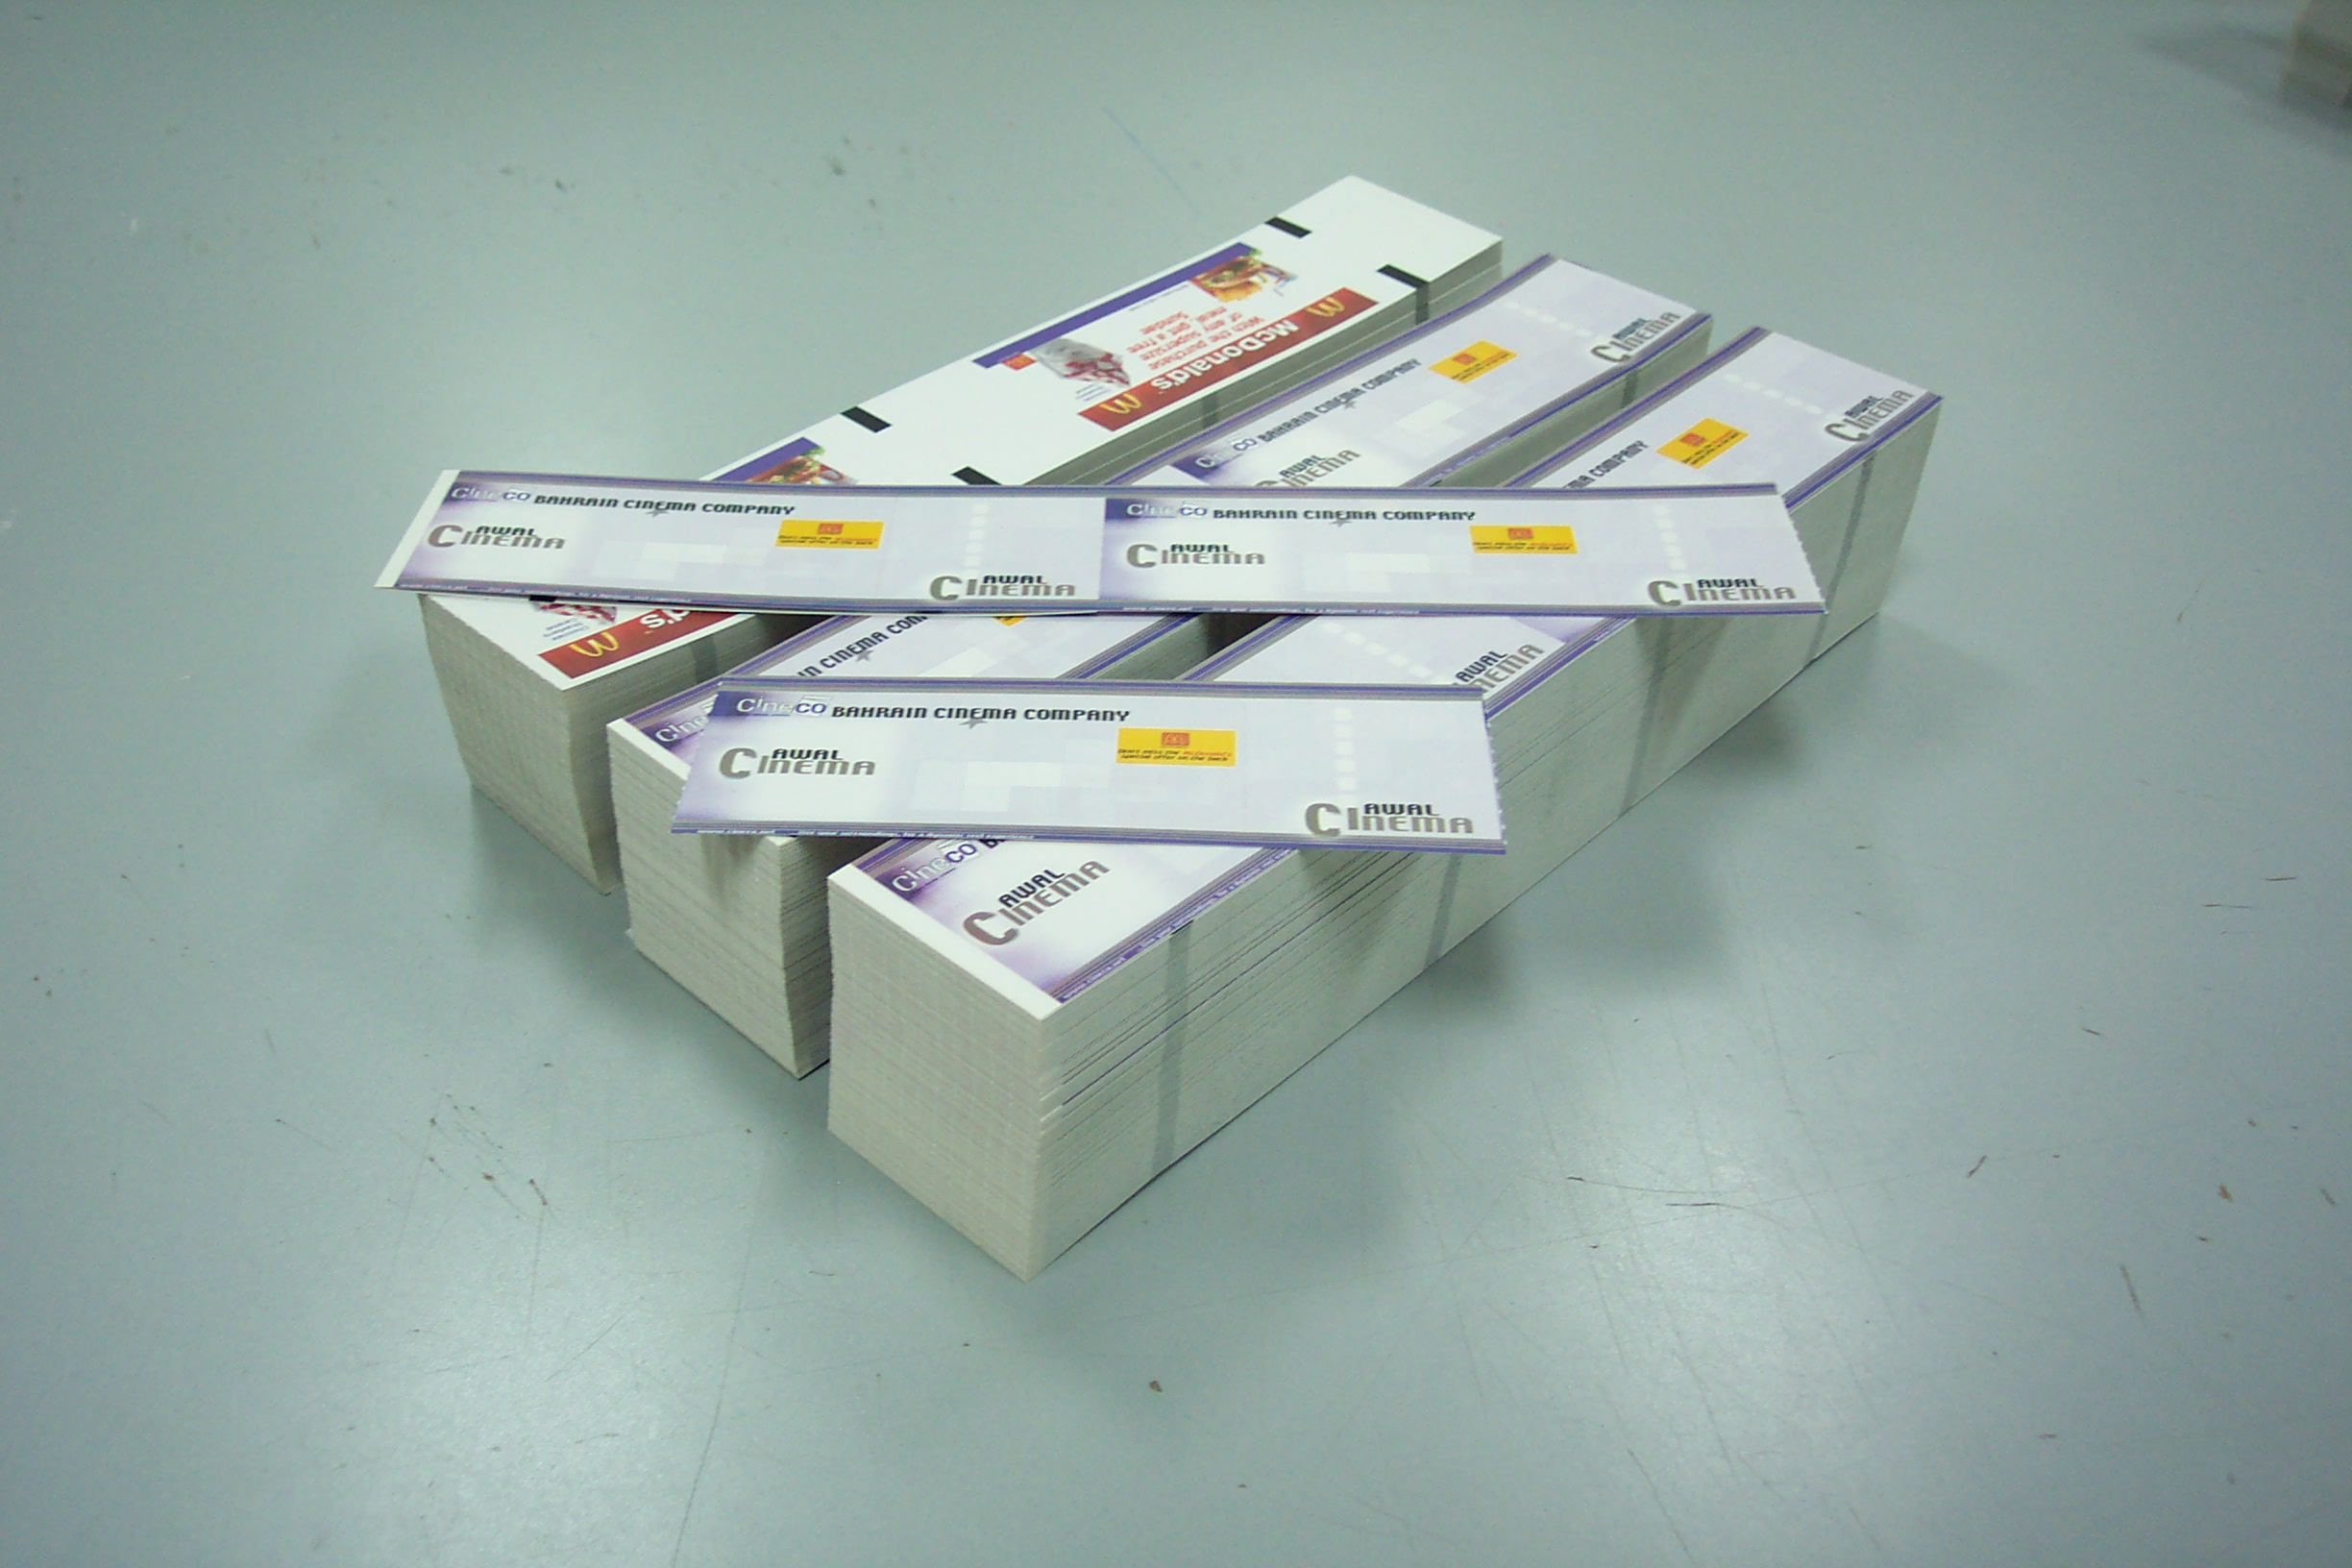 photograph relating to Printable Ticket Paper referred to as Thermal Tickets Least complicated thermal printing thrust inside of dubai, UAE